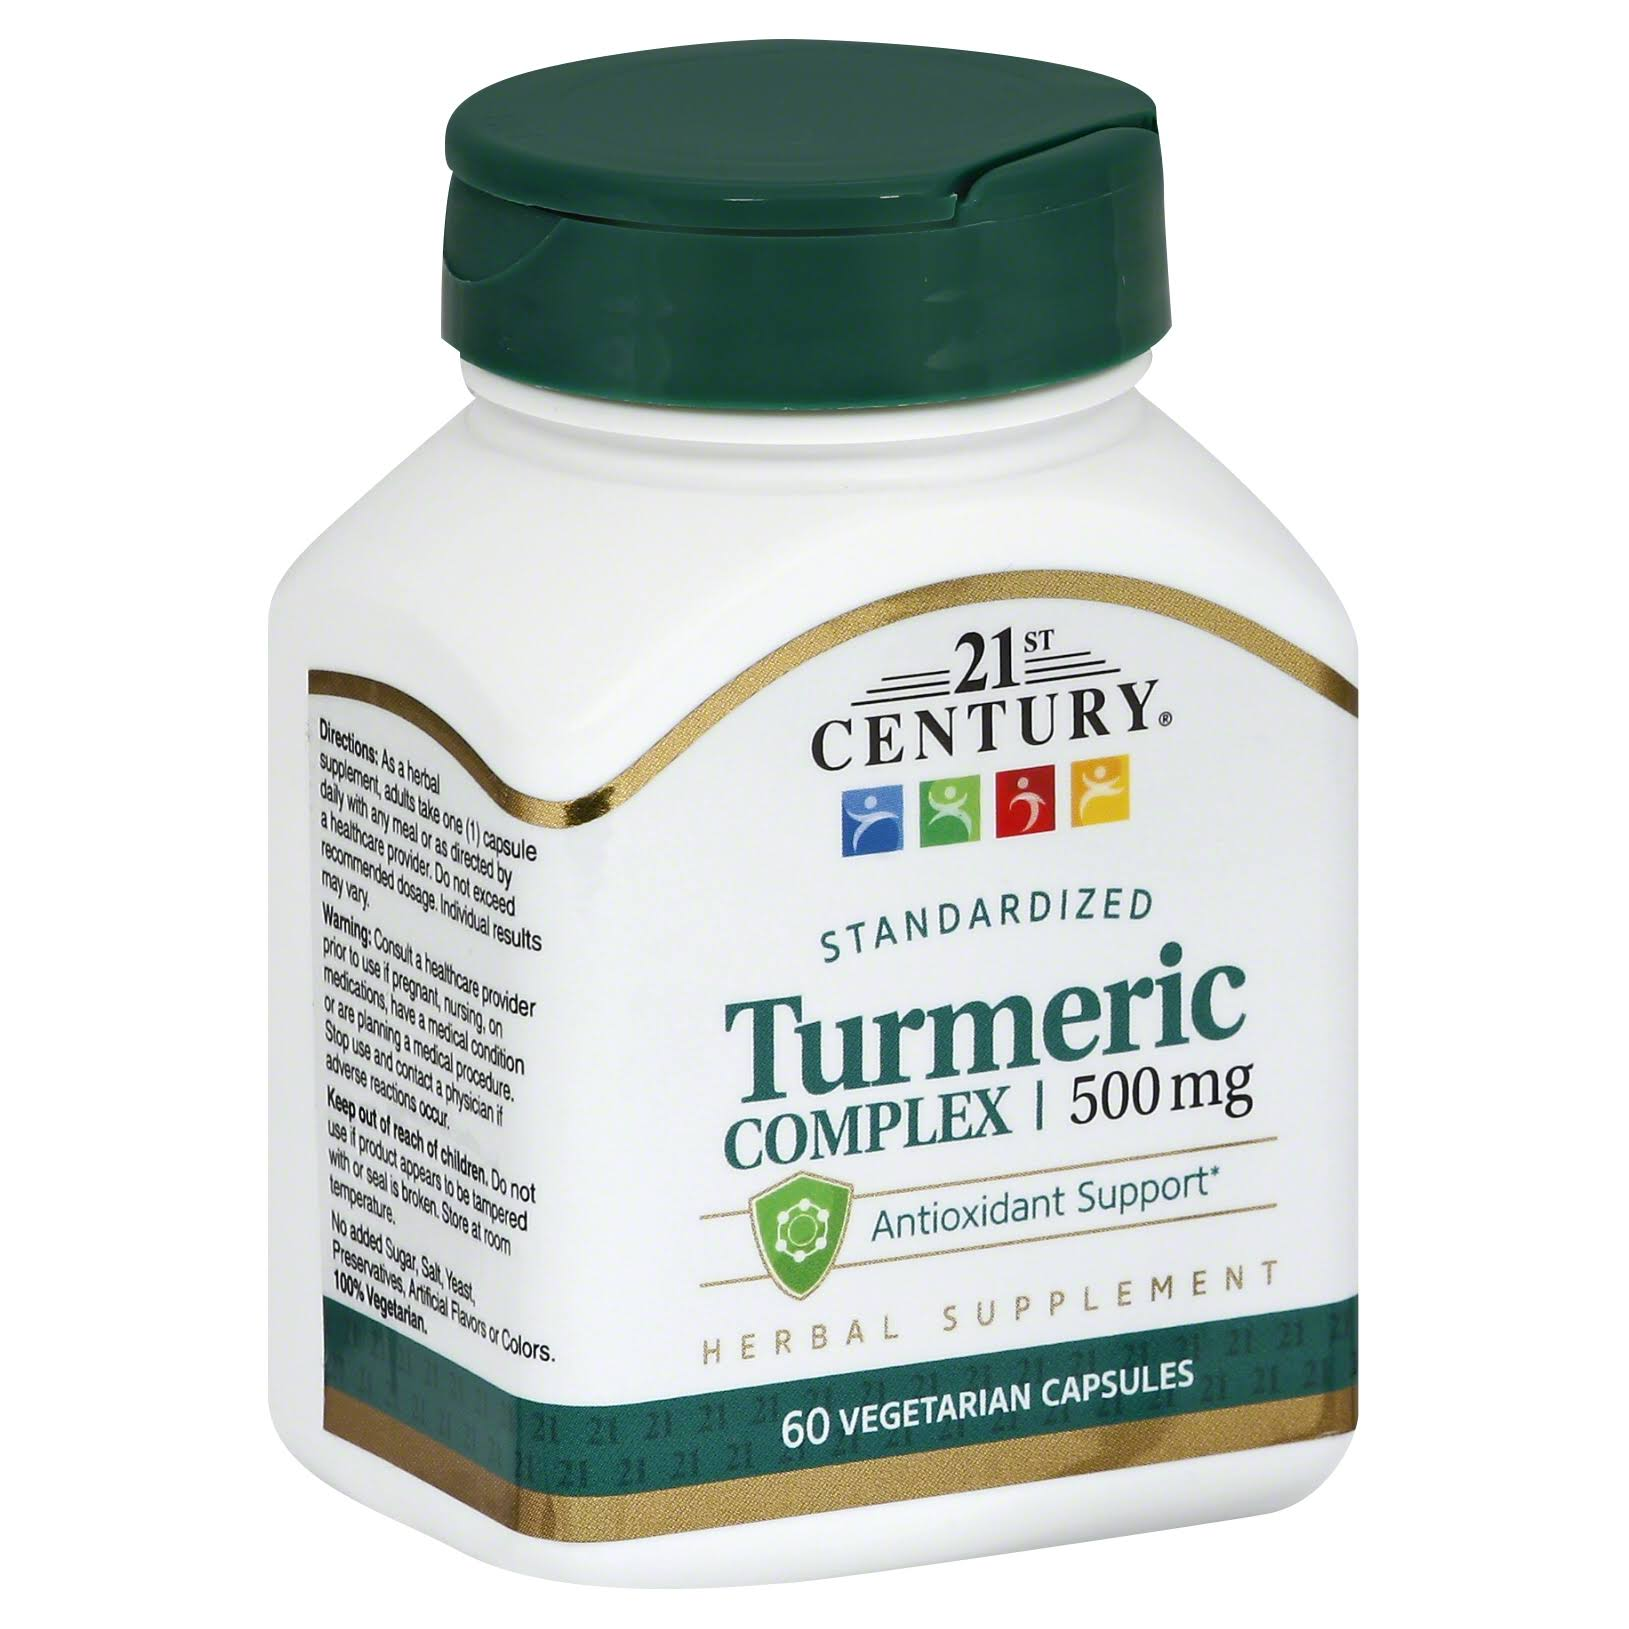 21st Century Turmeric Complex Dietary Supplement - 60 Vegetarian Capsules